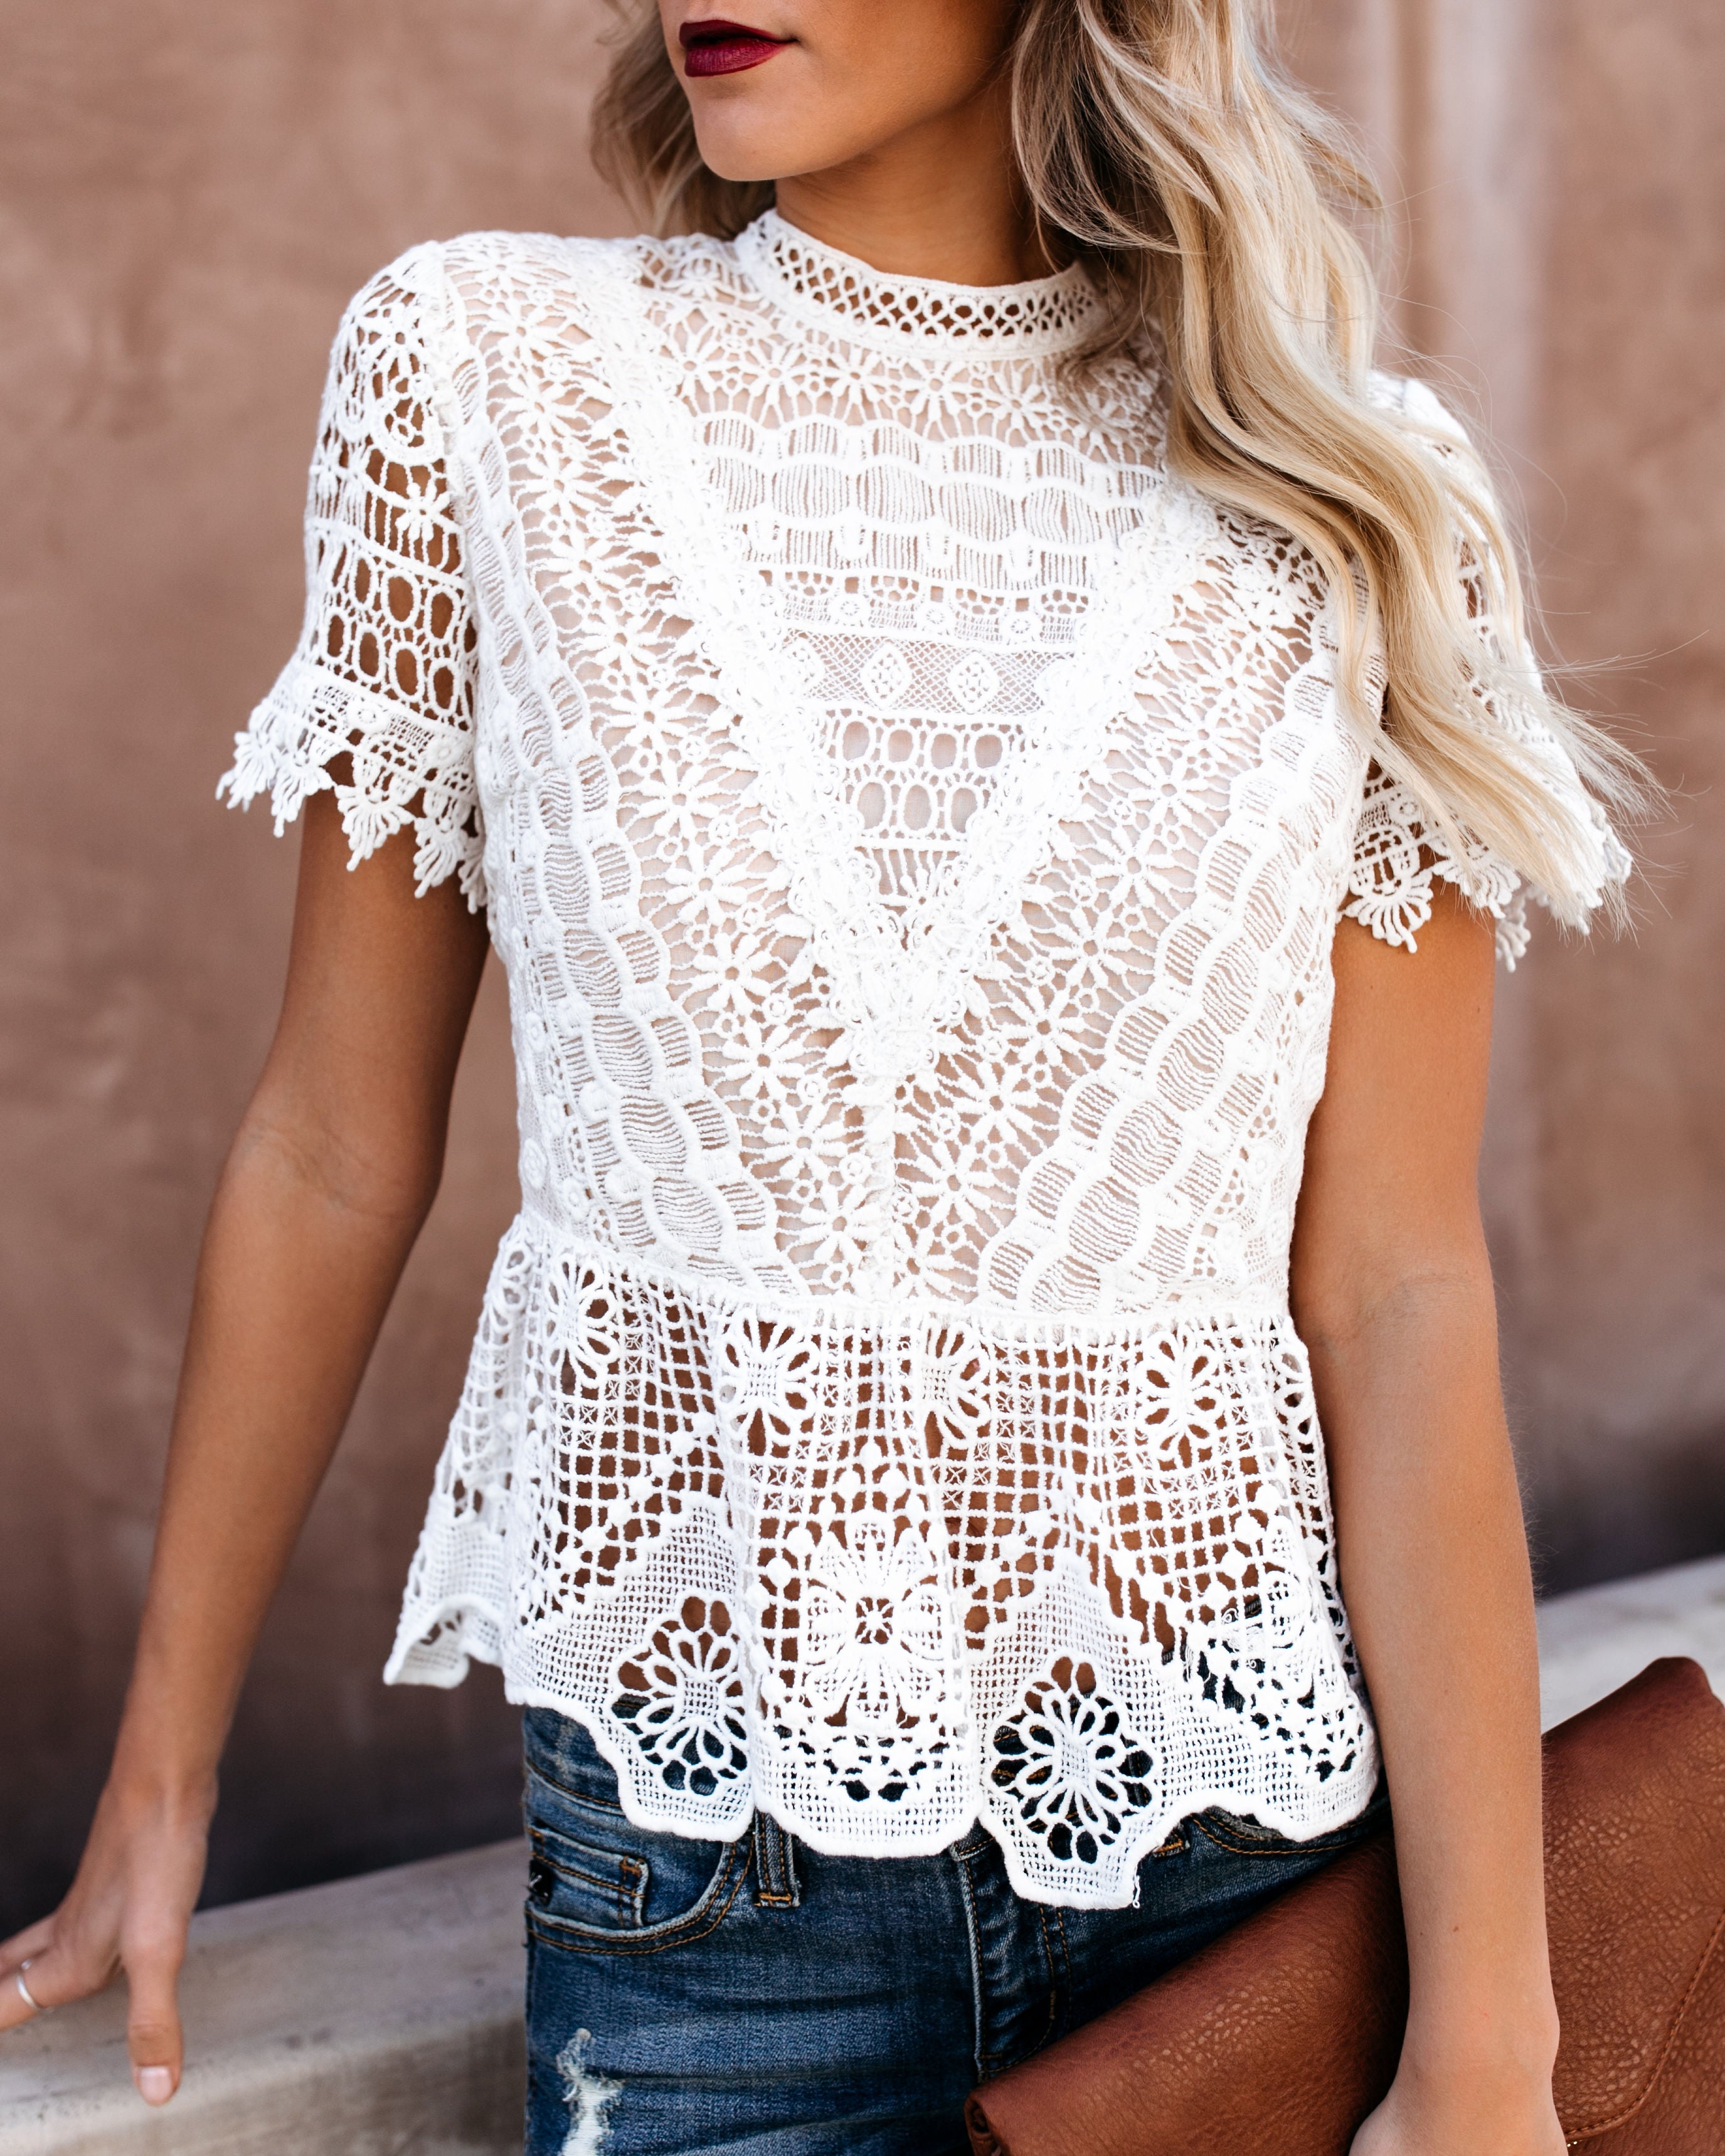 Poetic Crochet Lace Peplum Top - Vintage Ivory.  62.00 Unavailable. Size.  Small 4053f2921